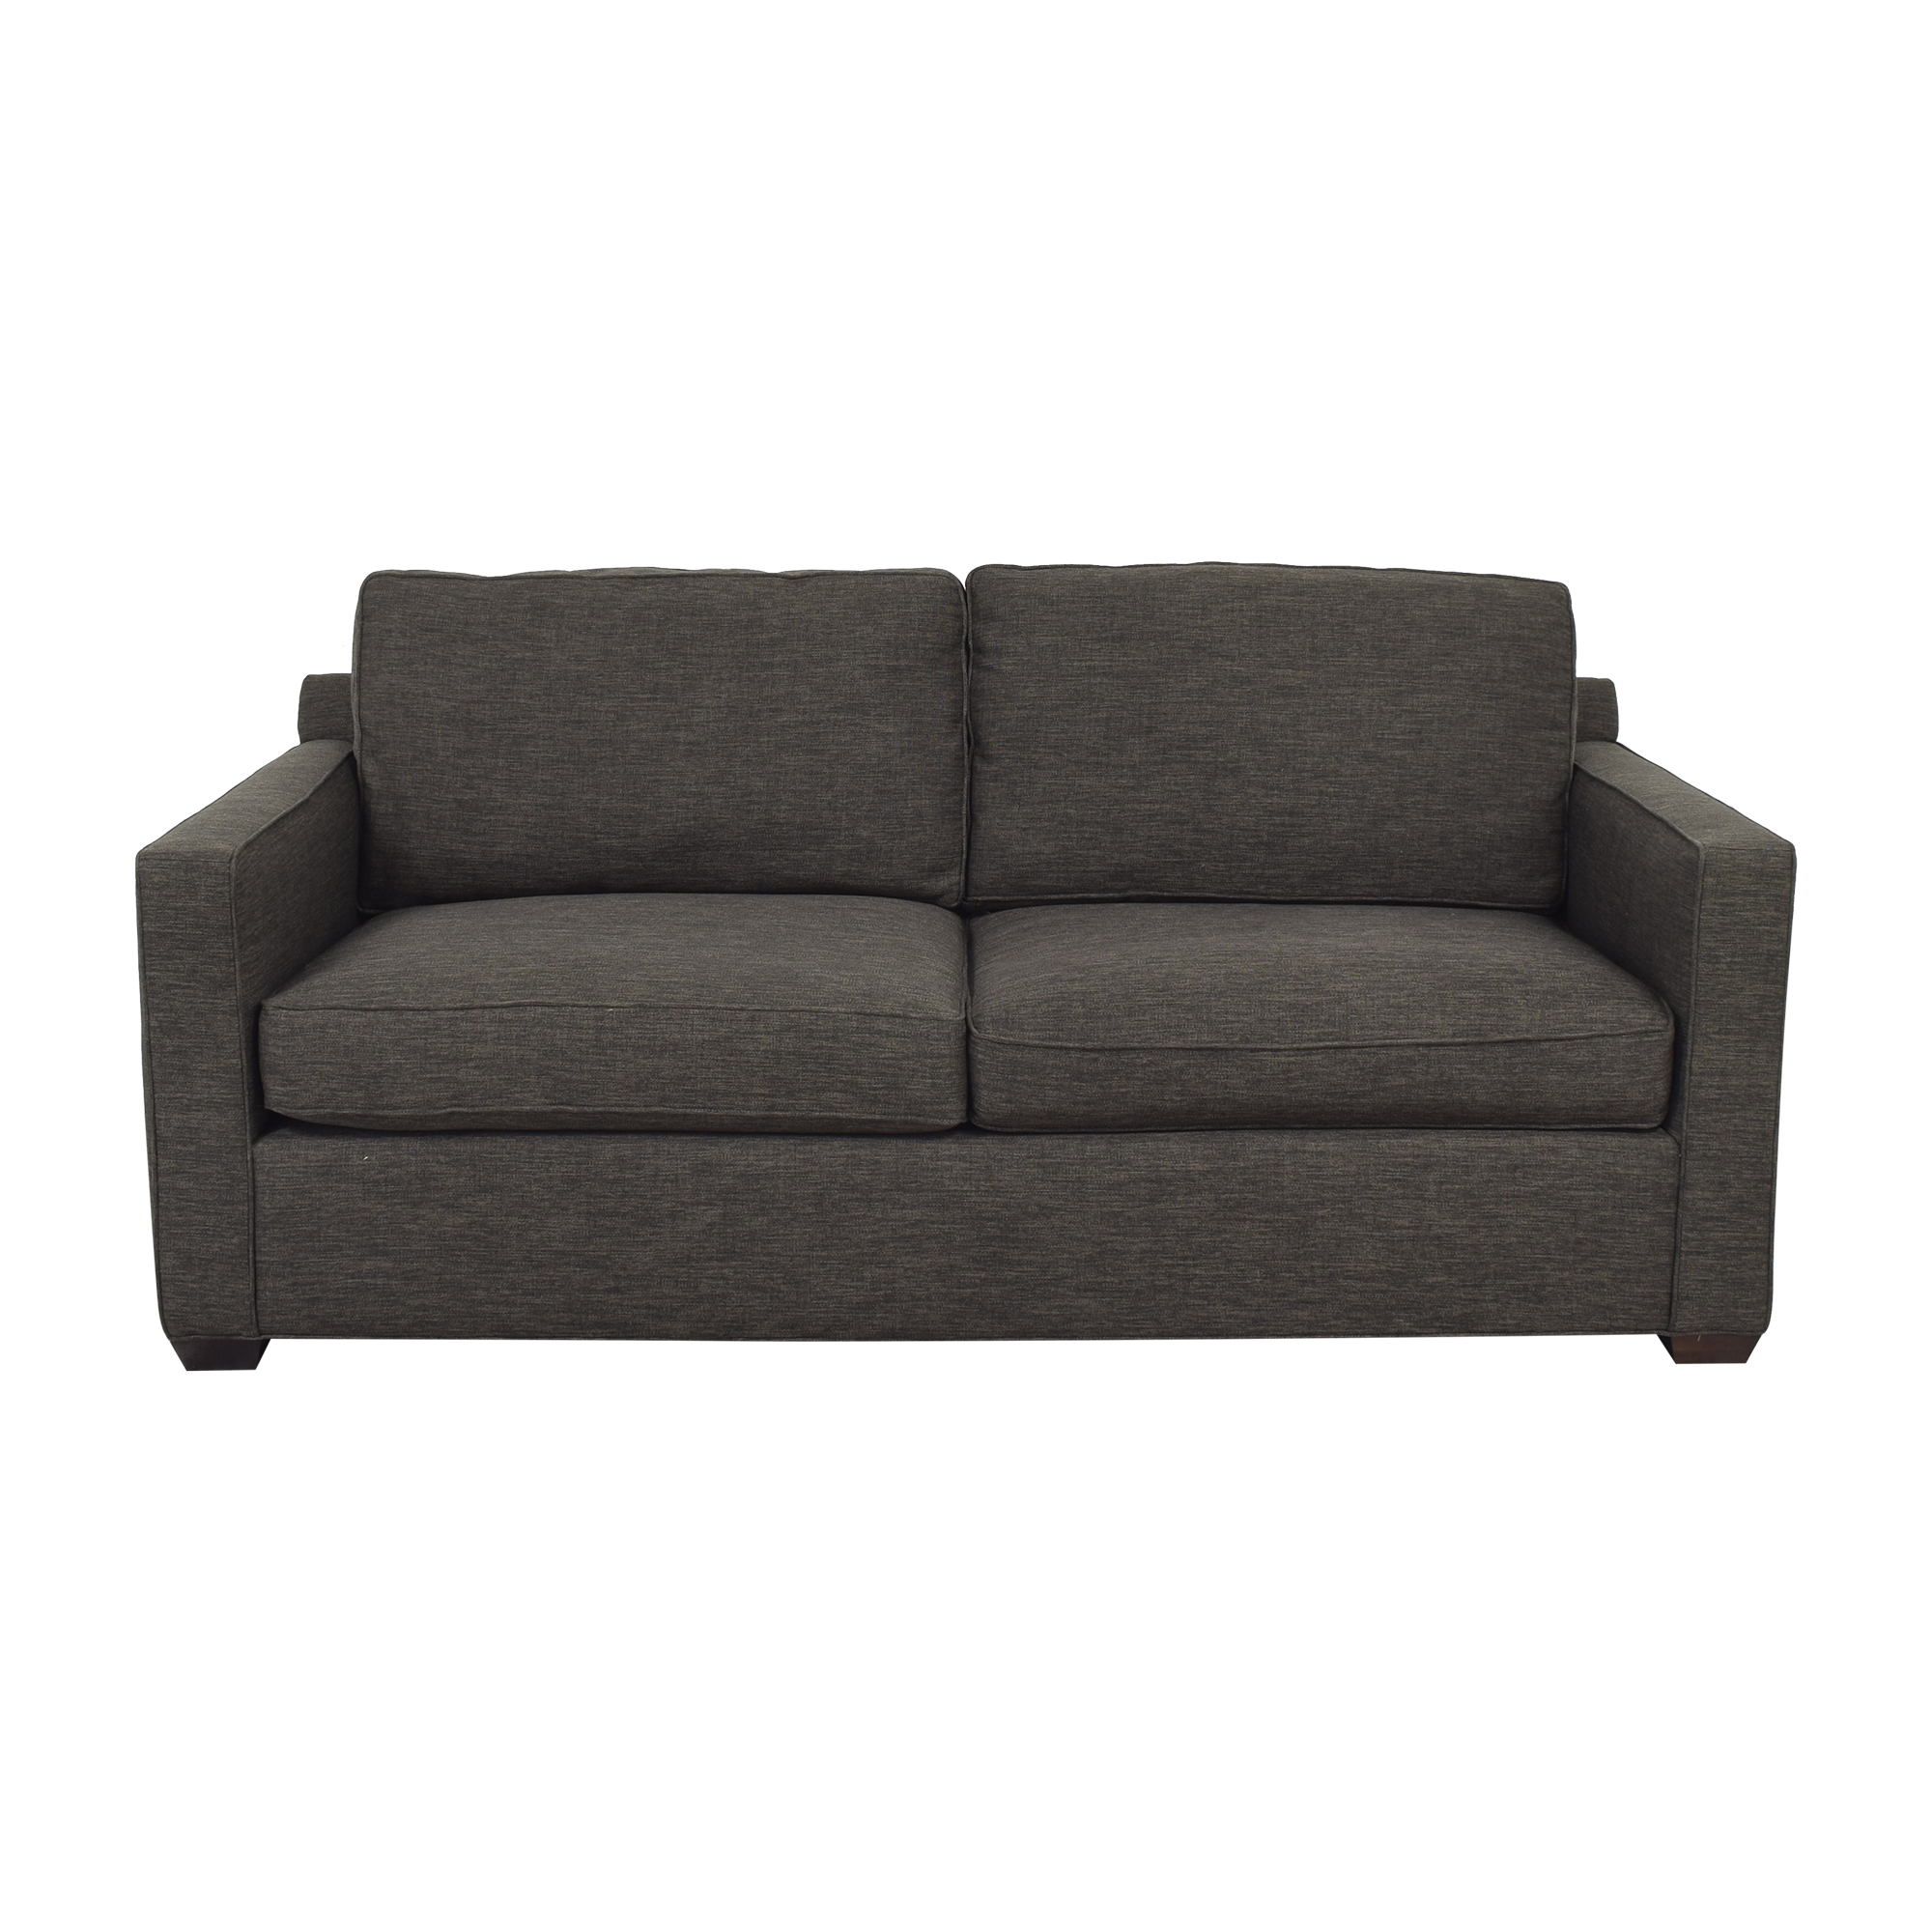 Crate & Barrel Crate & Barrel Davis Two Seat Sofa Sofas